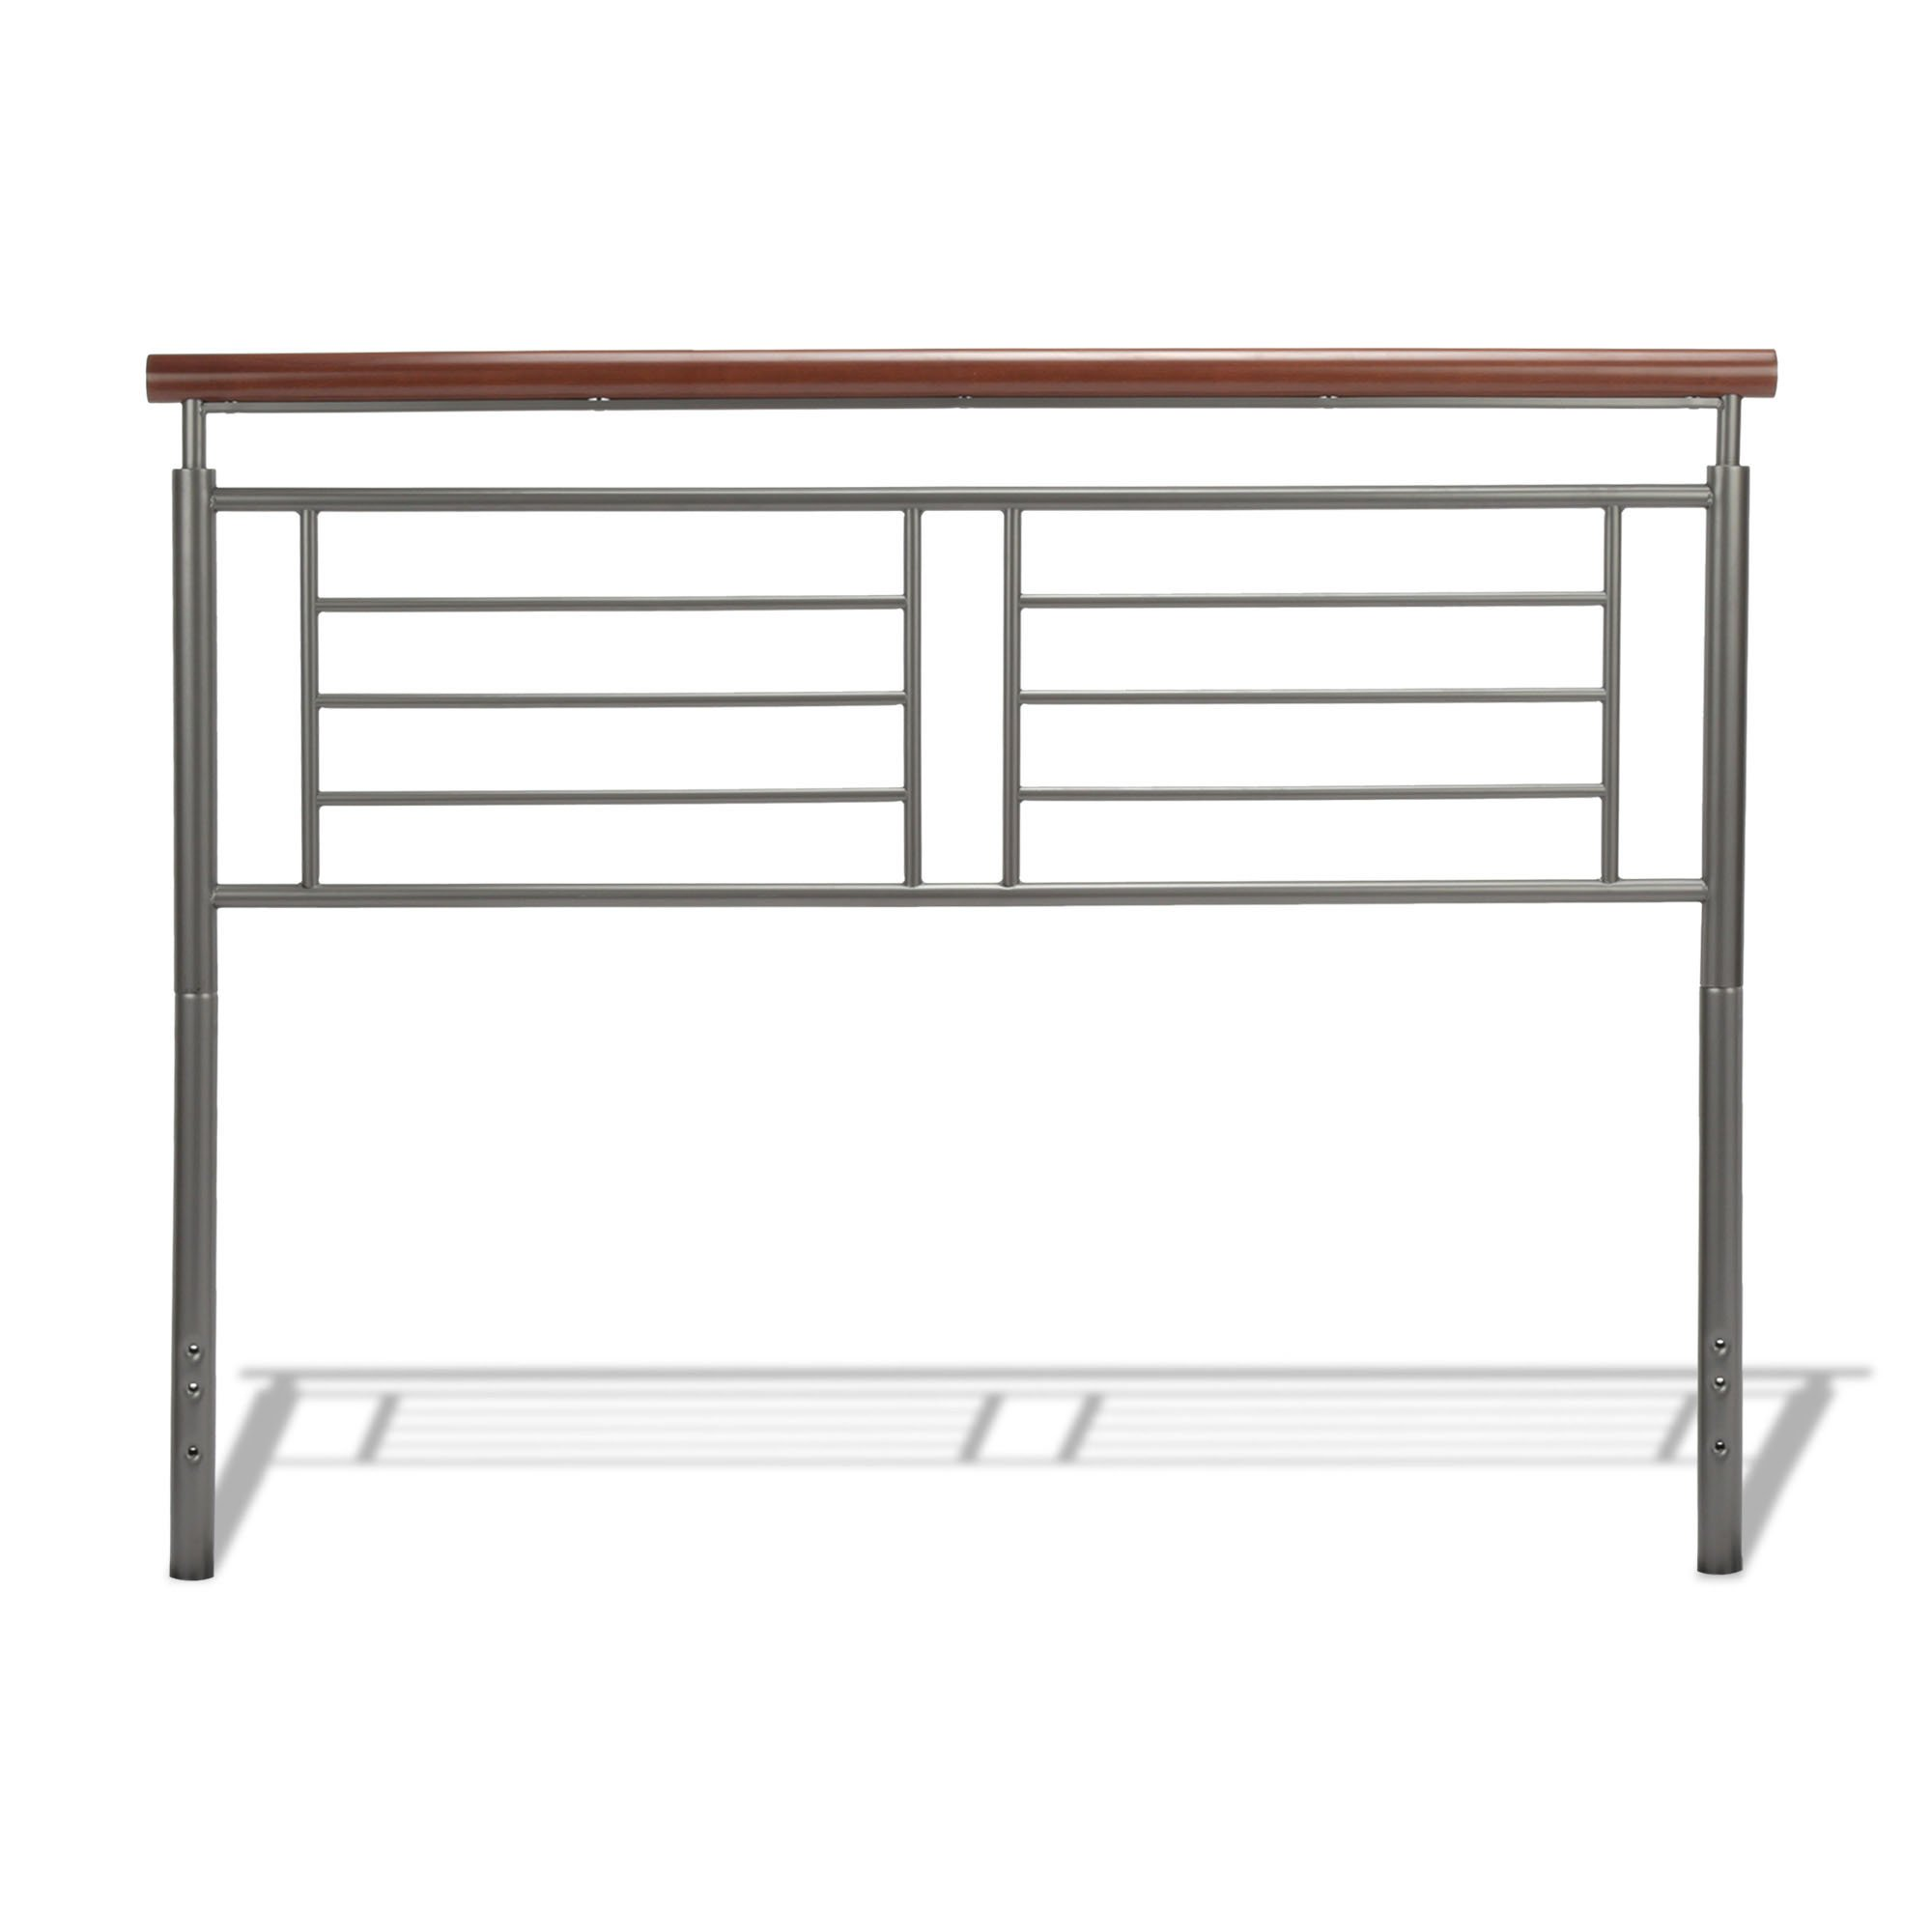 Fashion Bed Group Fontane Metal Headboard with Geometric Panel and Rounded Cherry Top Rail, Silver Finish, Full